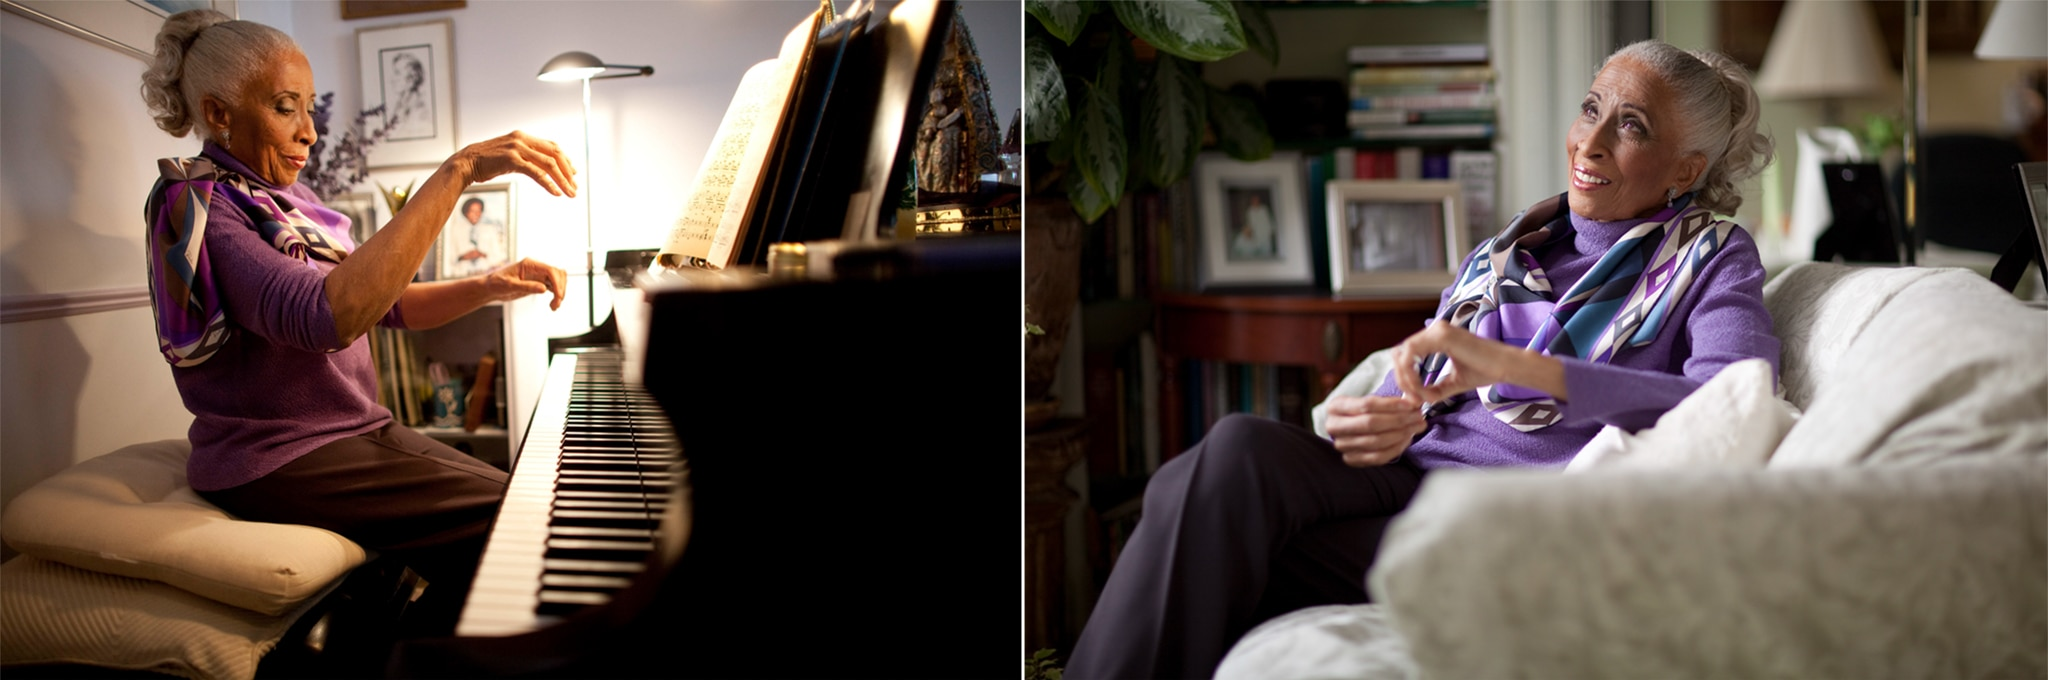 Composite of two photos: Woman playing piano; woman seated on couch (© Robert Caplin/New York Times/Redux)